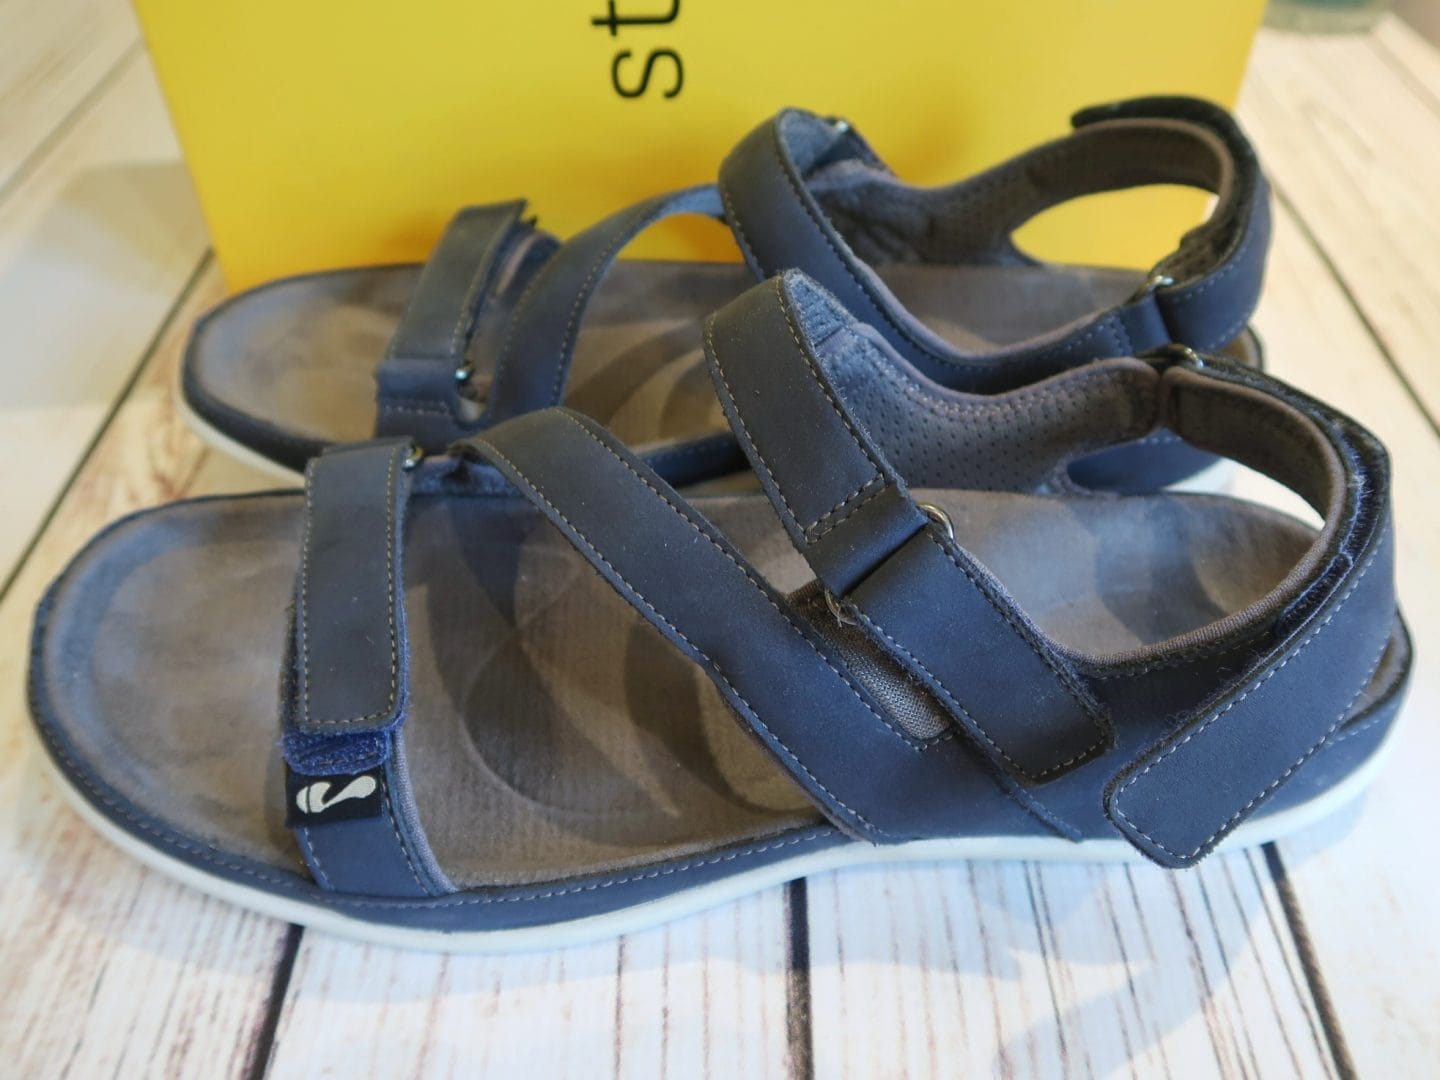 Strive spring and summer collection - Montana sandals